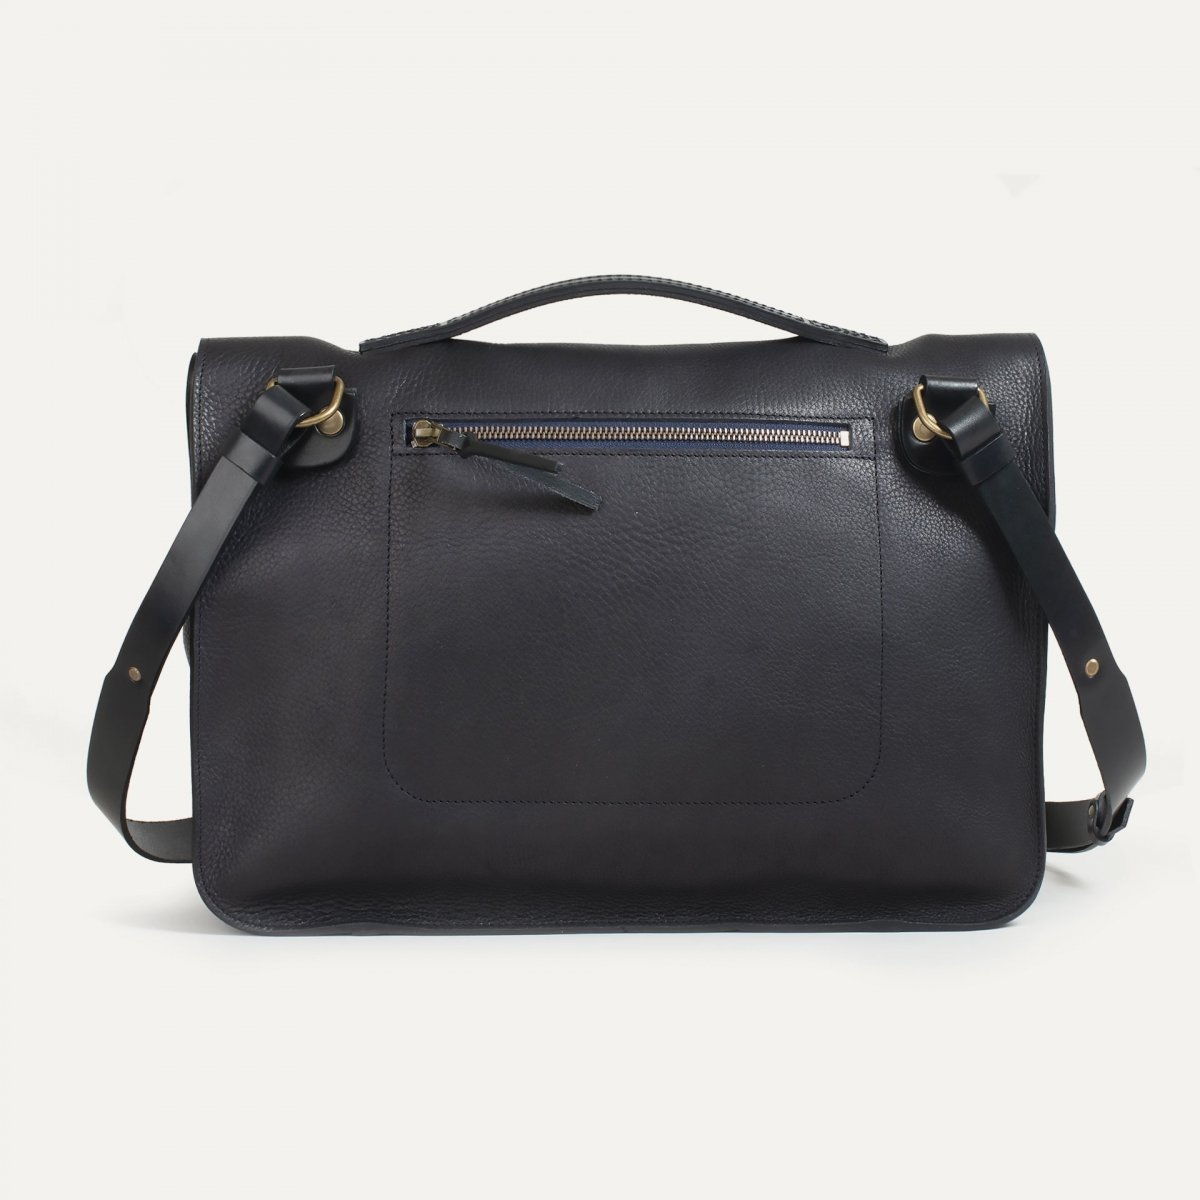 Groucho Leather Satchel - Black / E Pure (image n°2)